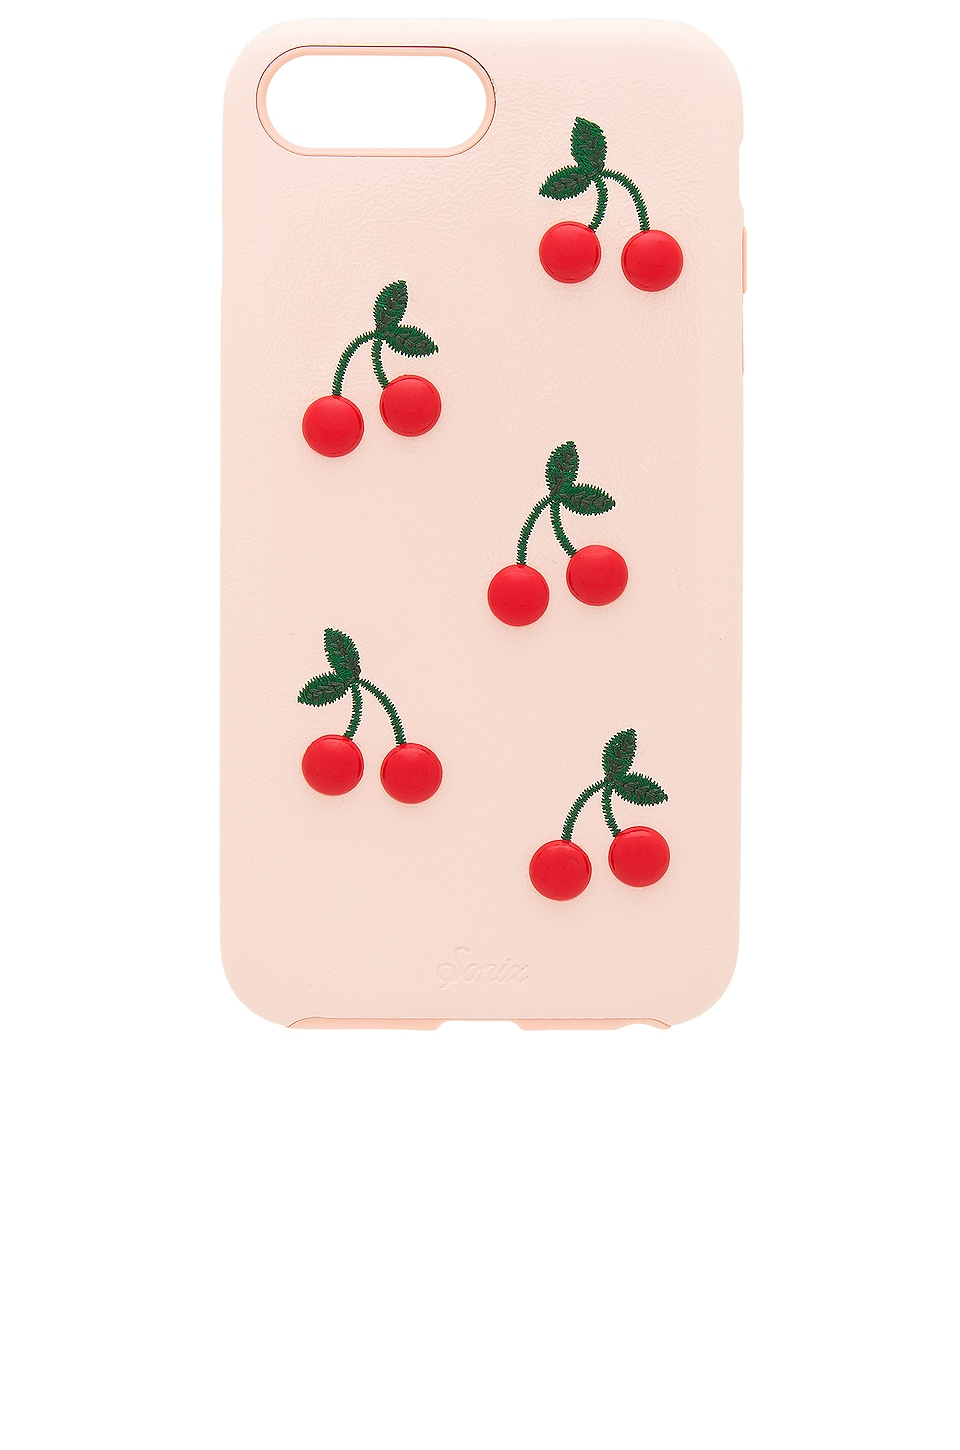 Sonix Patent Cherry iPhone 6/7/8 Plus Case in Patent Cherry